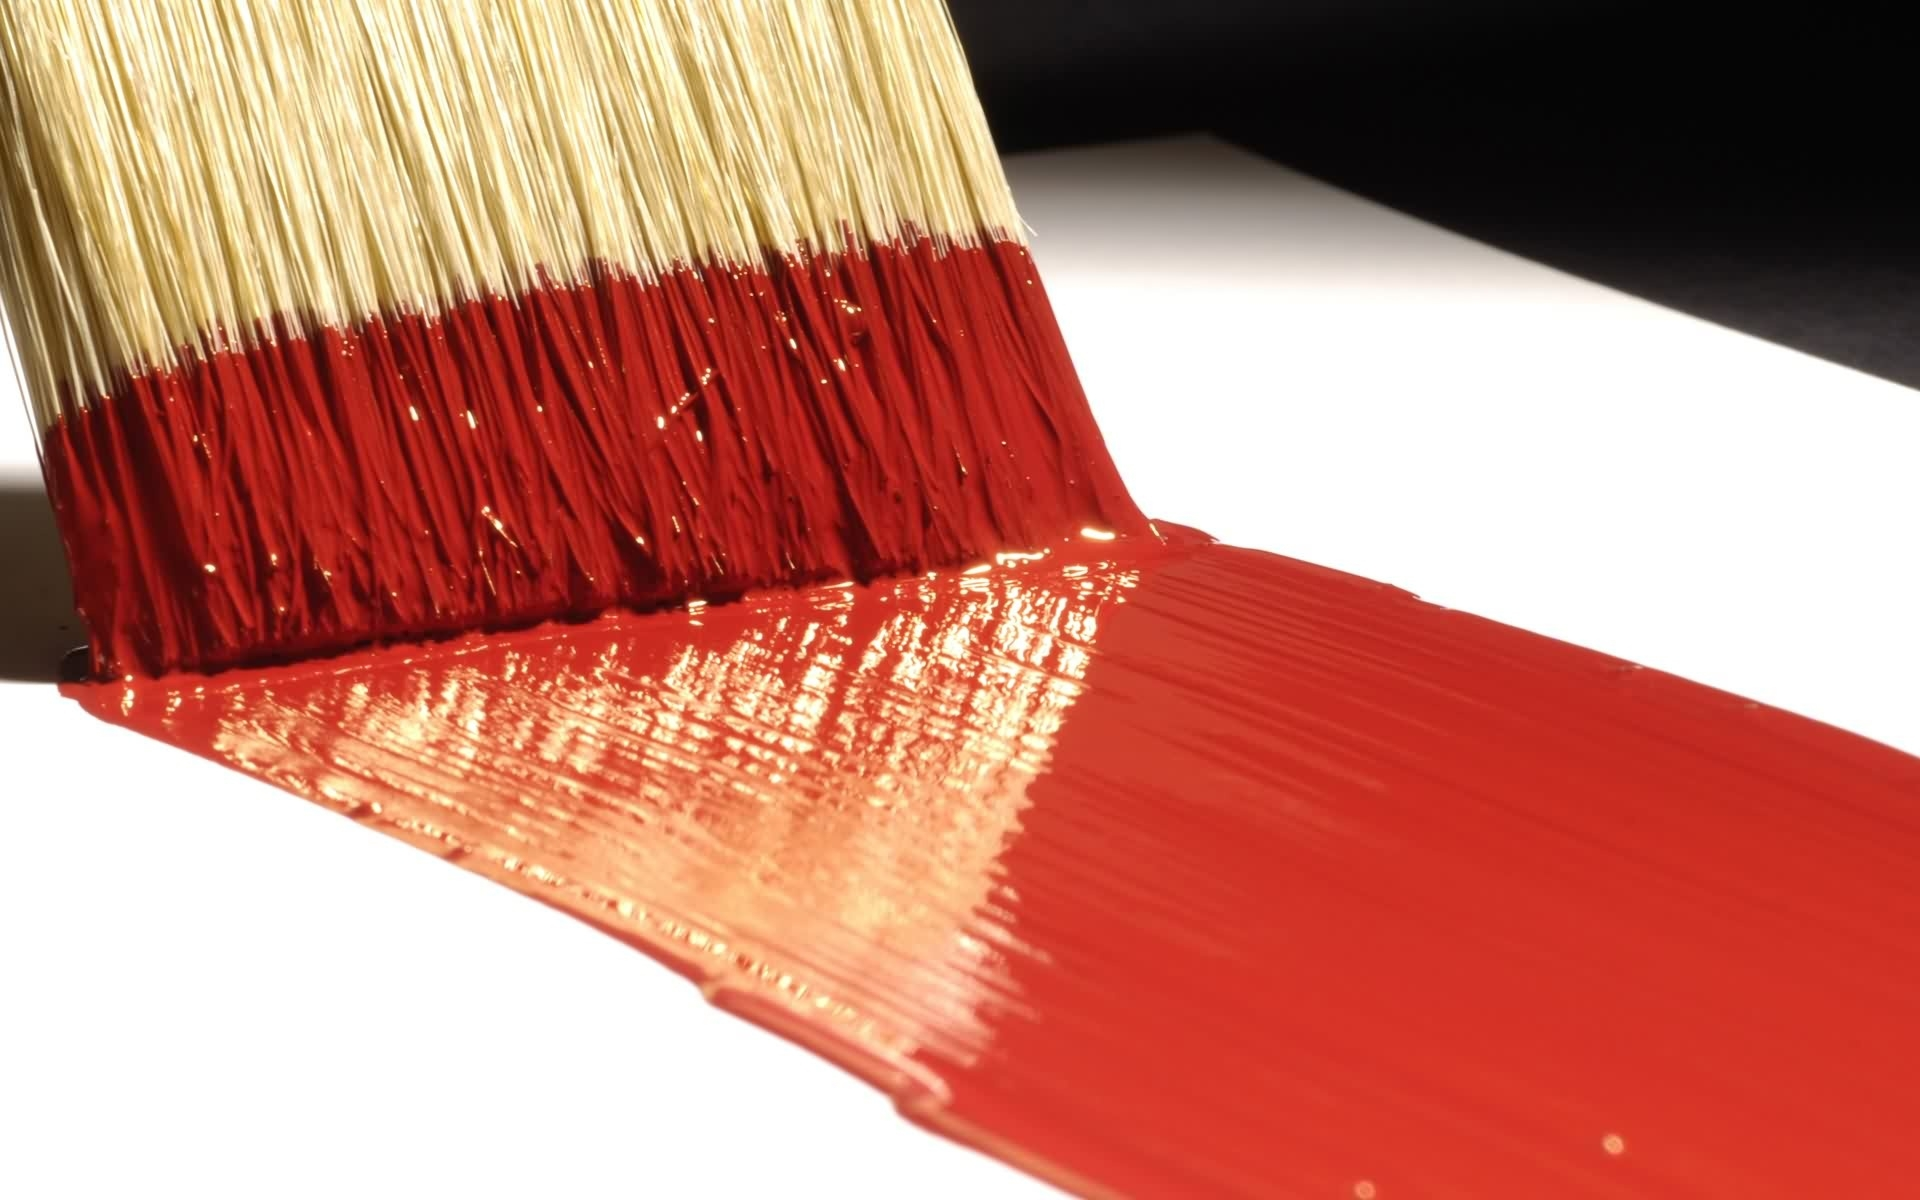 paint brush close up desktop wallpaper 63186